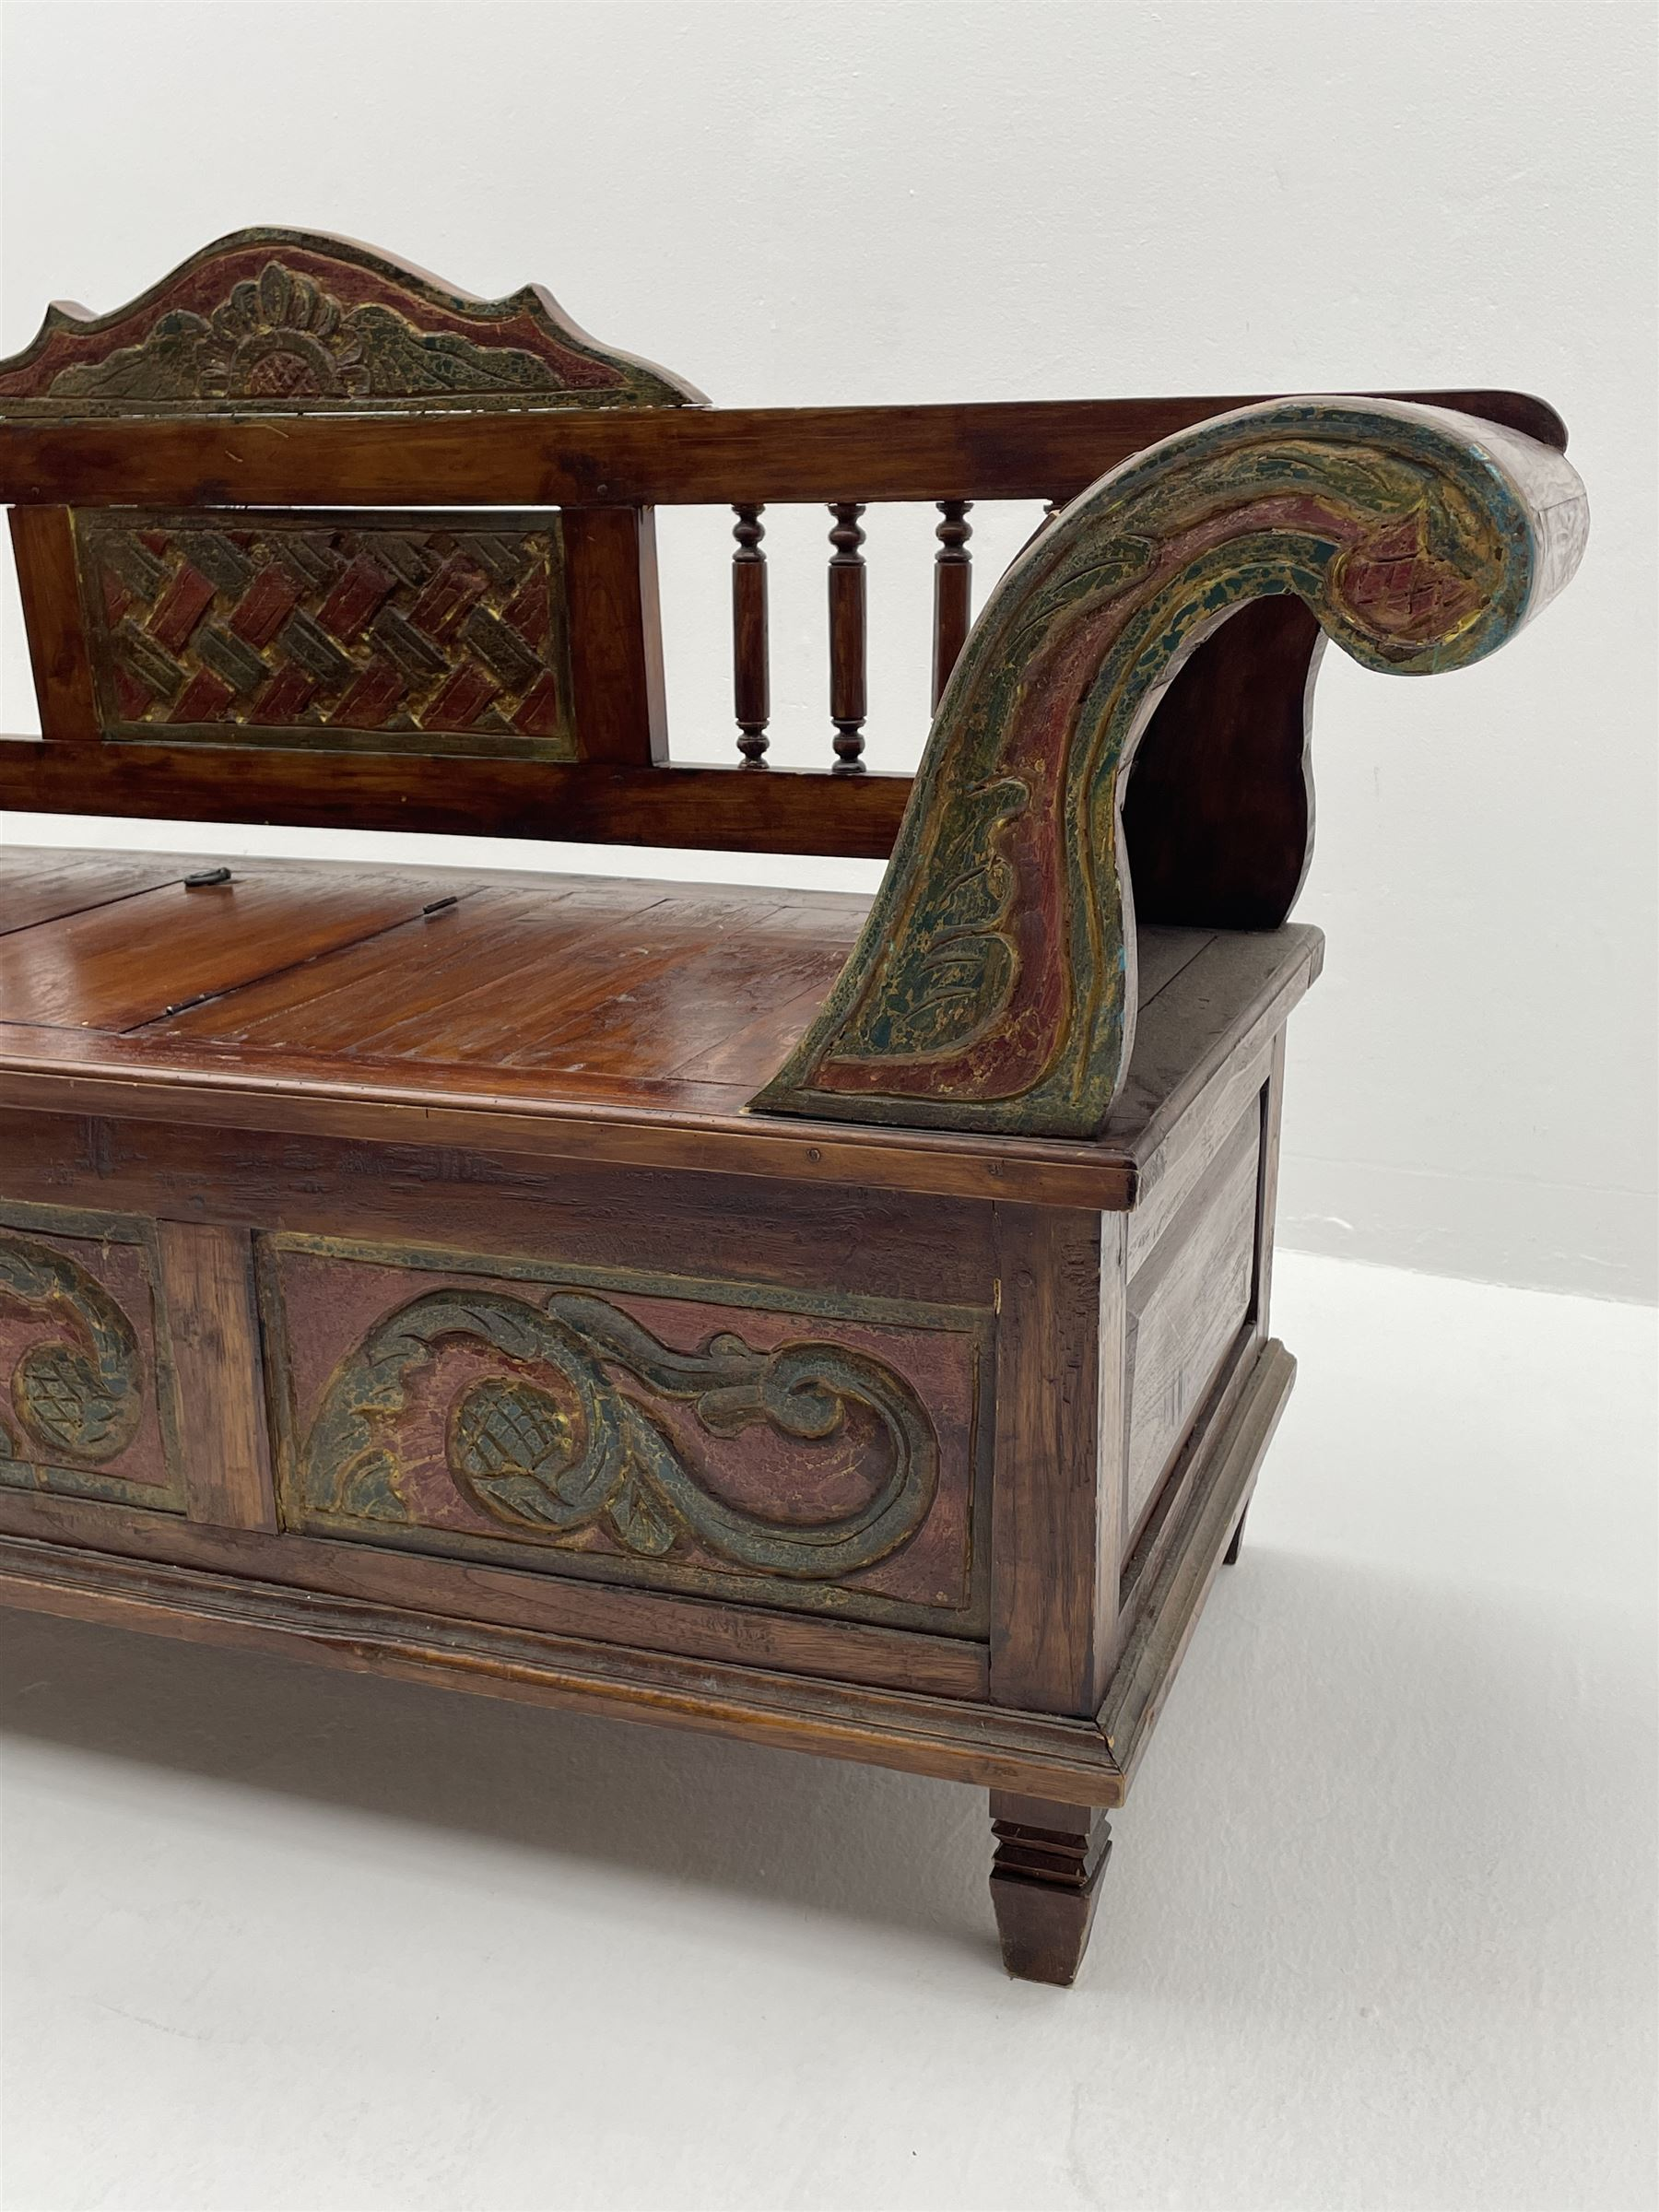 Eastern style carved hardwood bench - Image 3 of 3